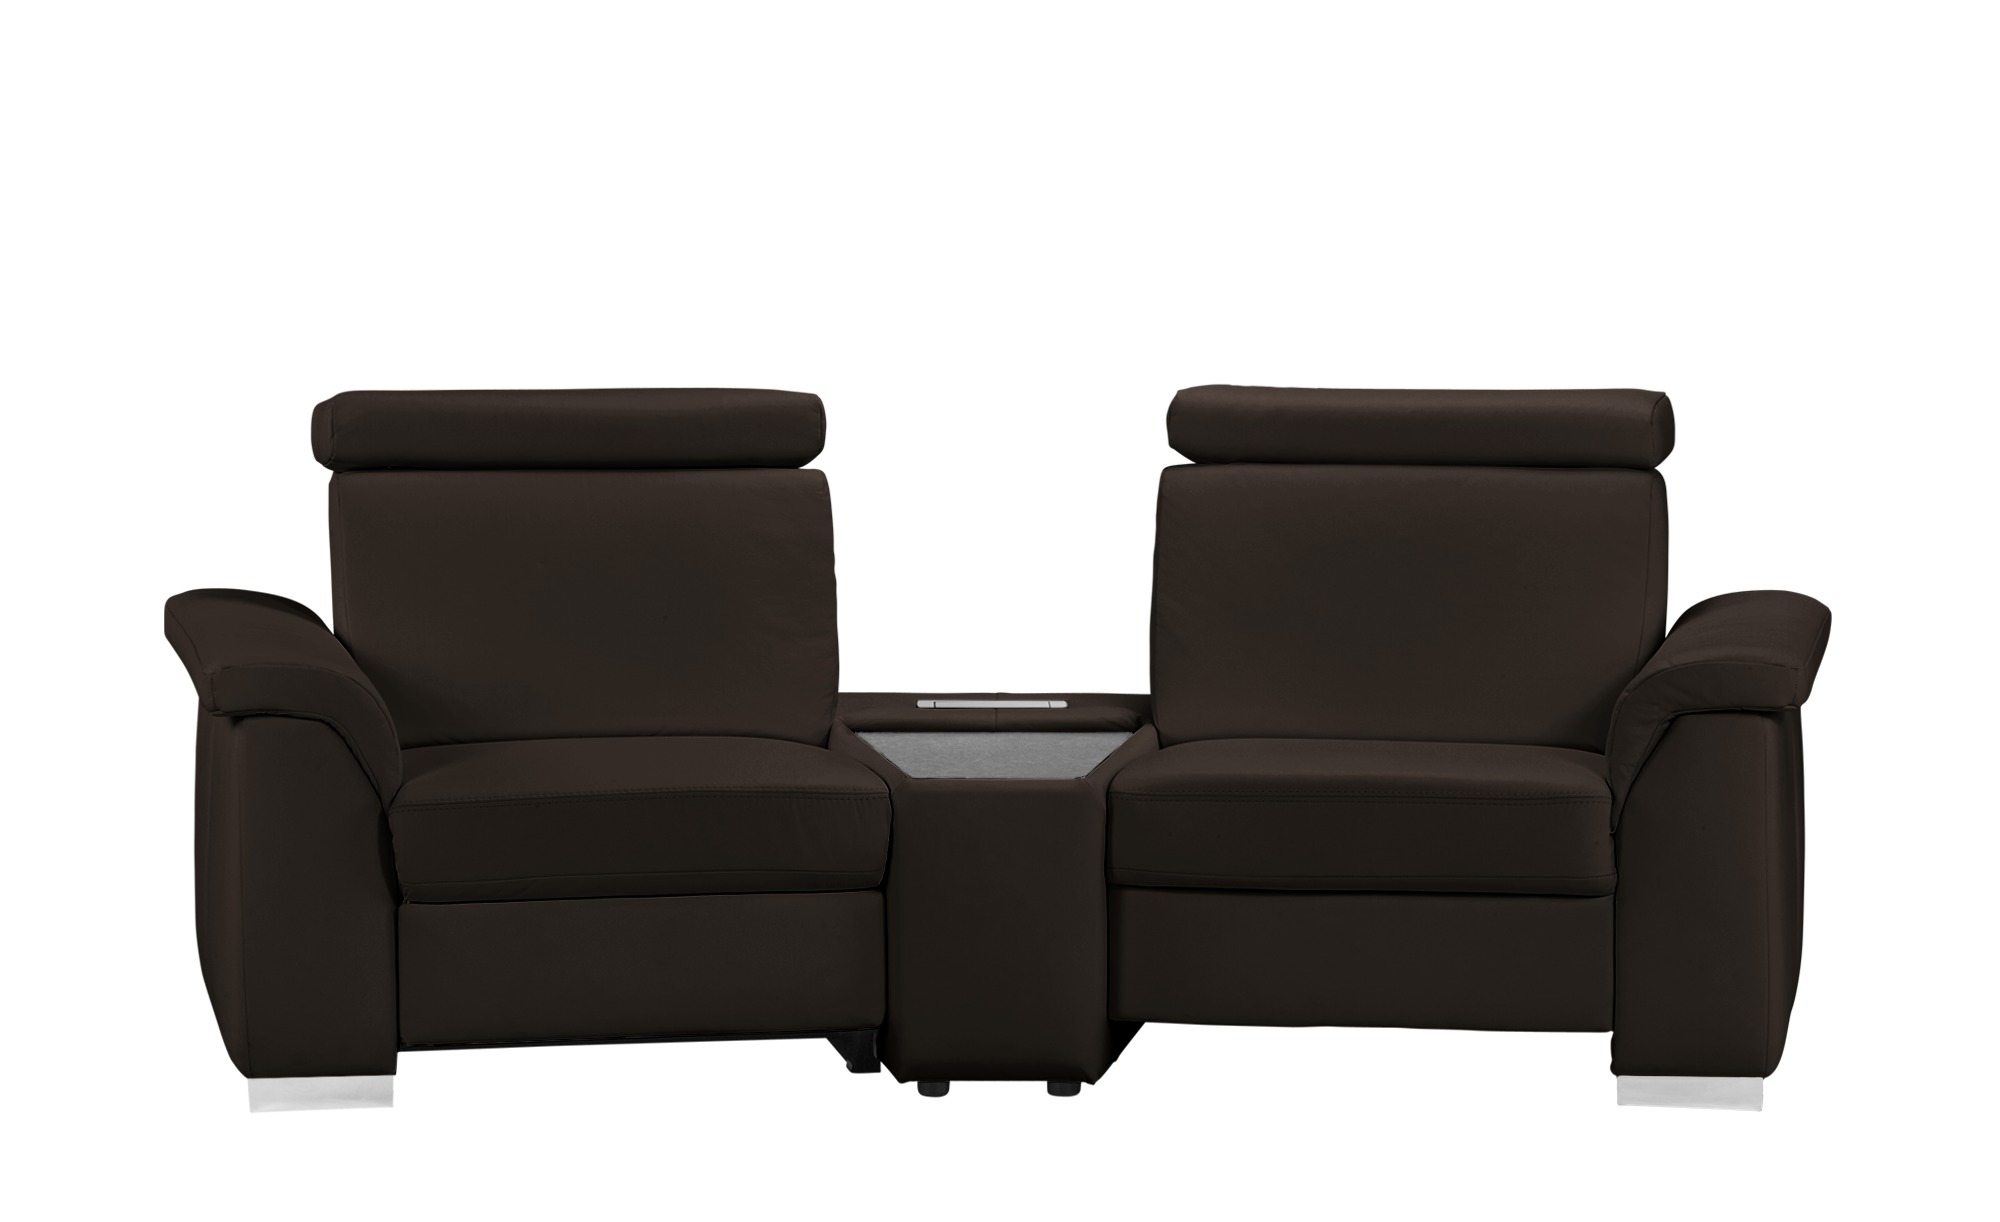 Couch Kaufen München Pretty Cinema Sofa Images Gallery Cinema Sofa Efinewines Com